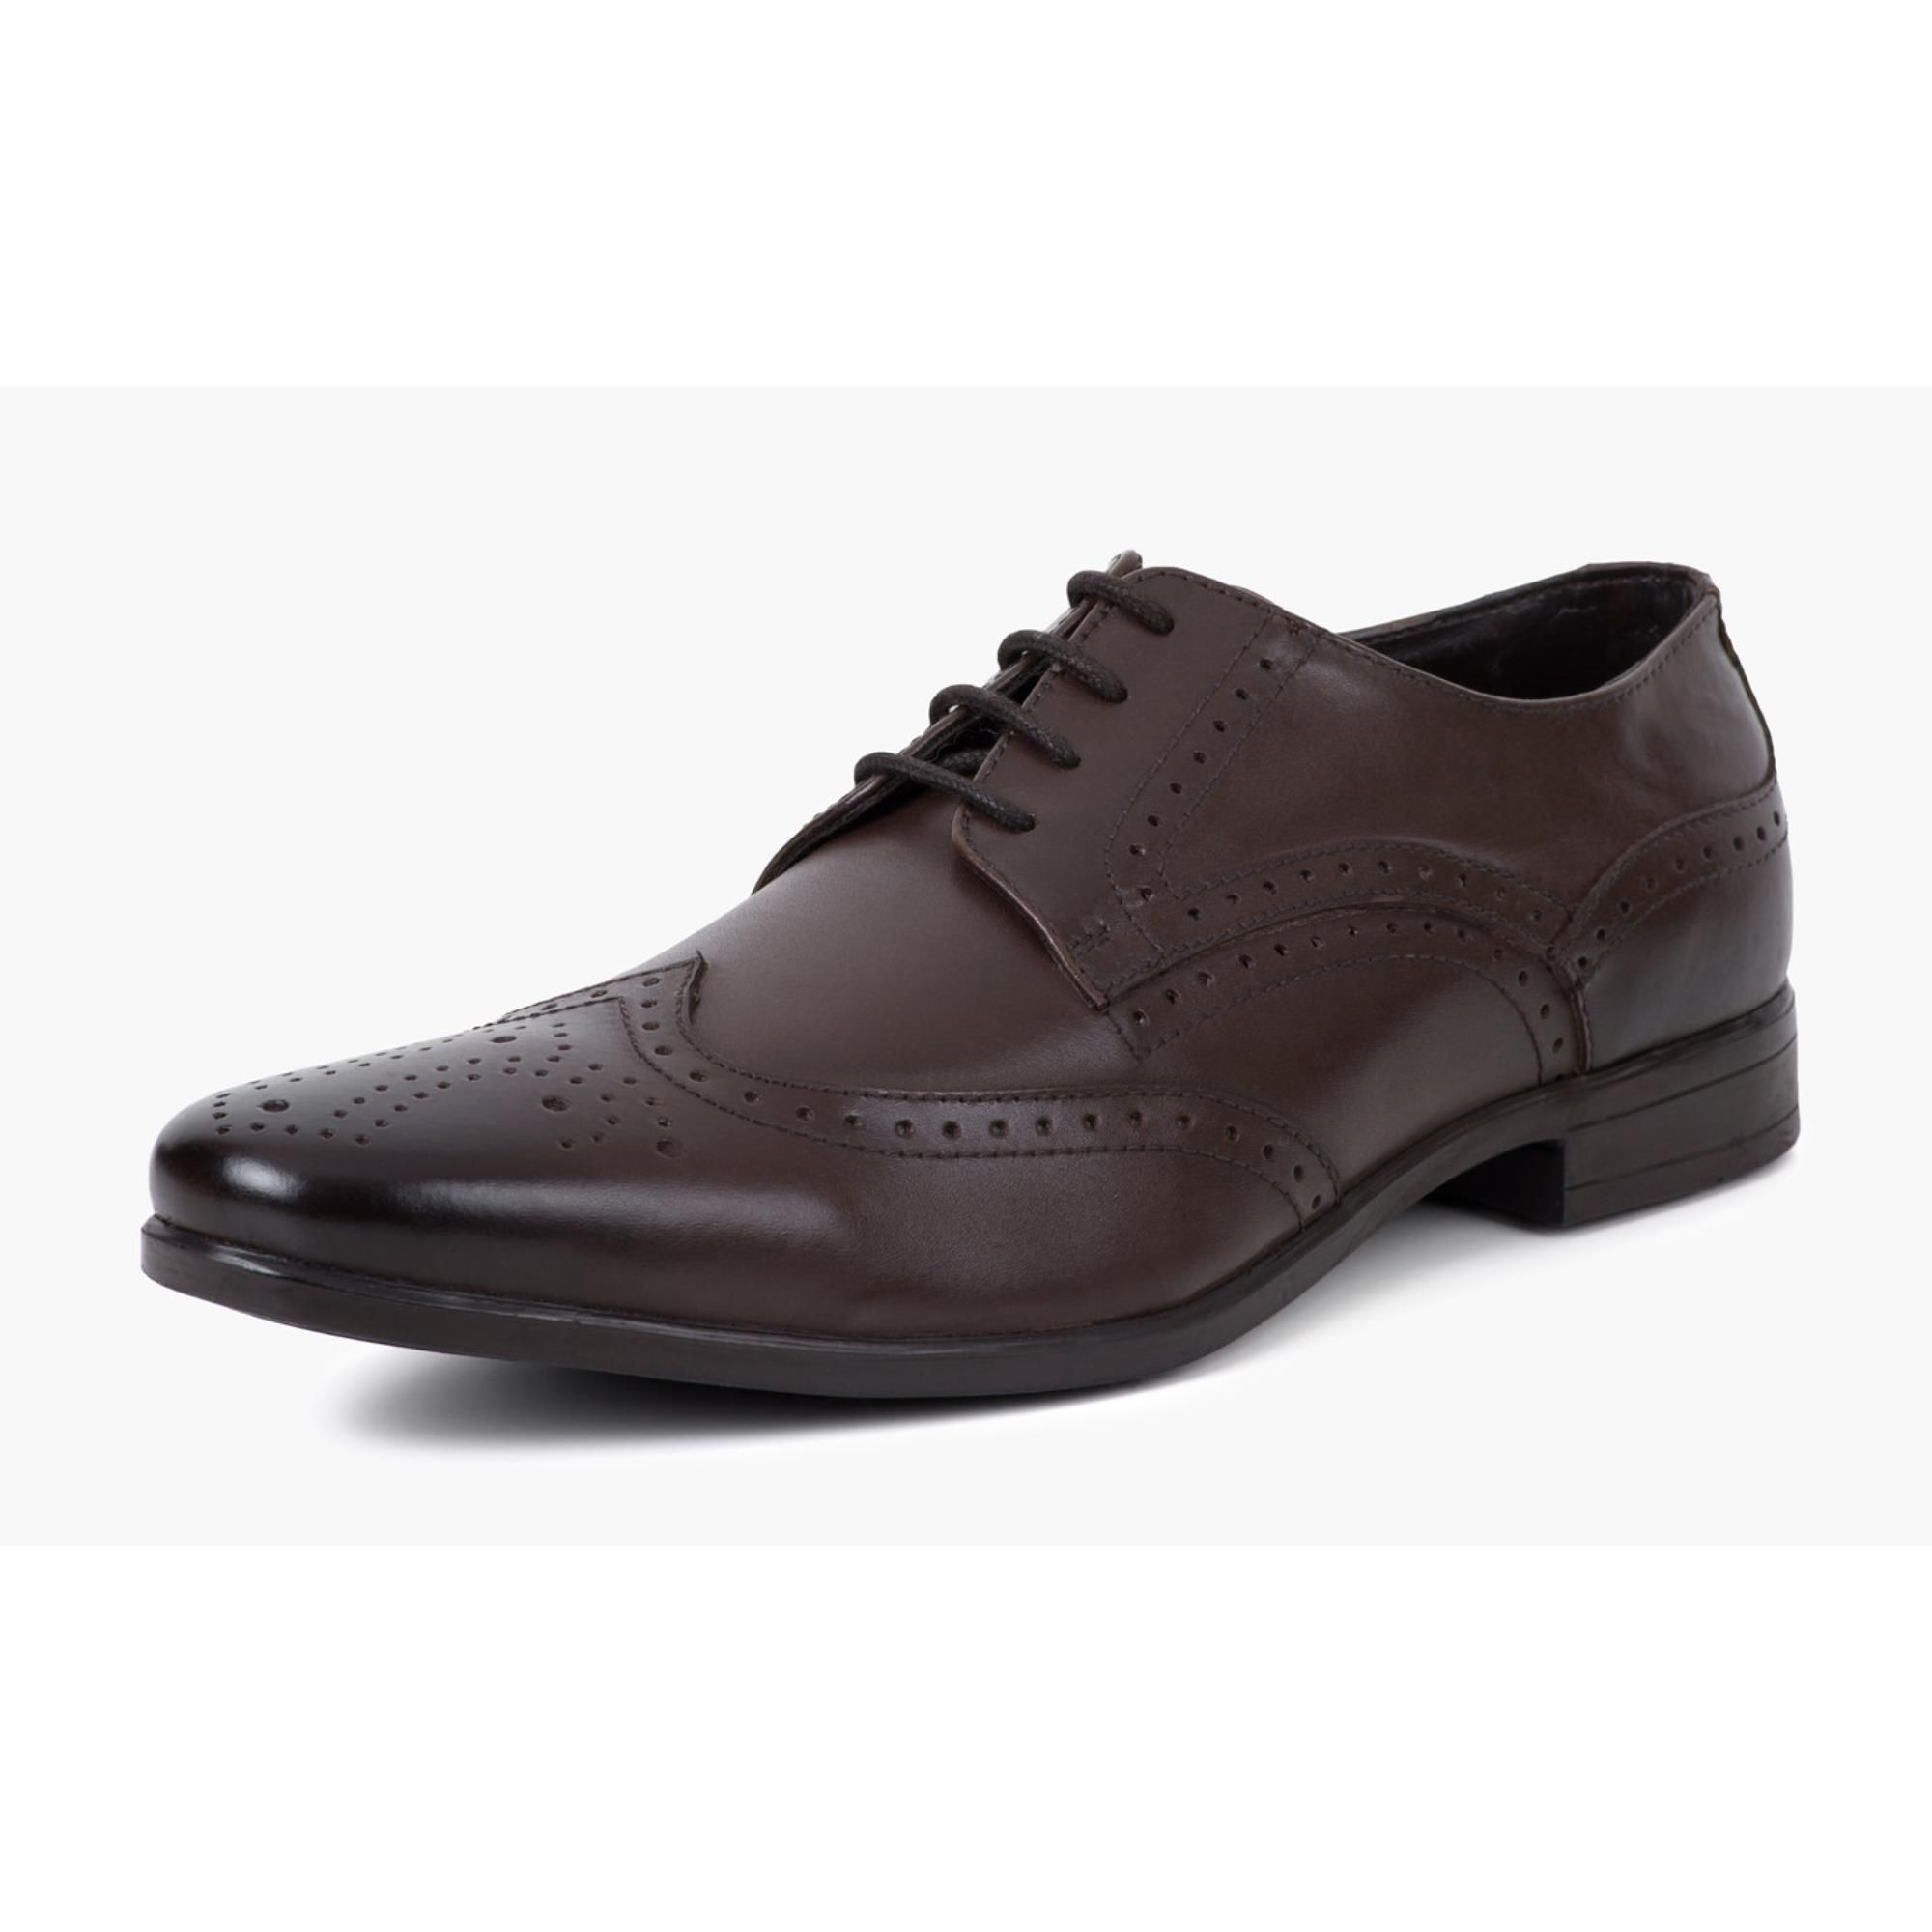 Redfoot Jenson Brown Leather Brogue Shoe